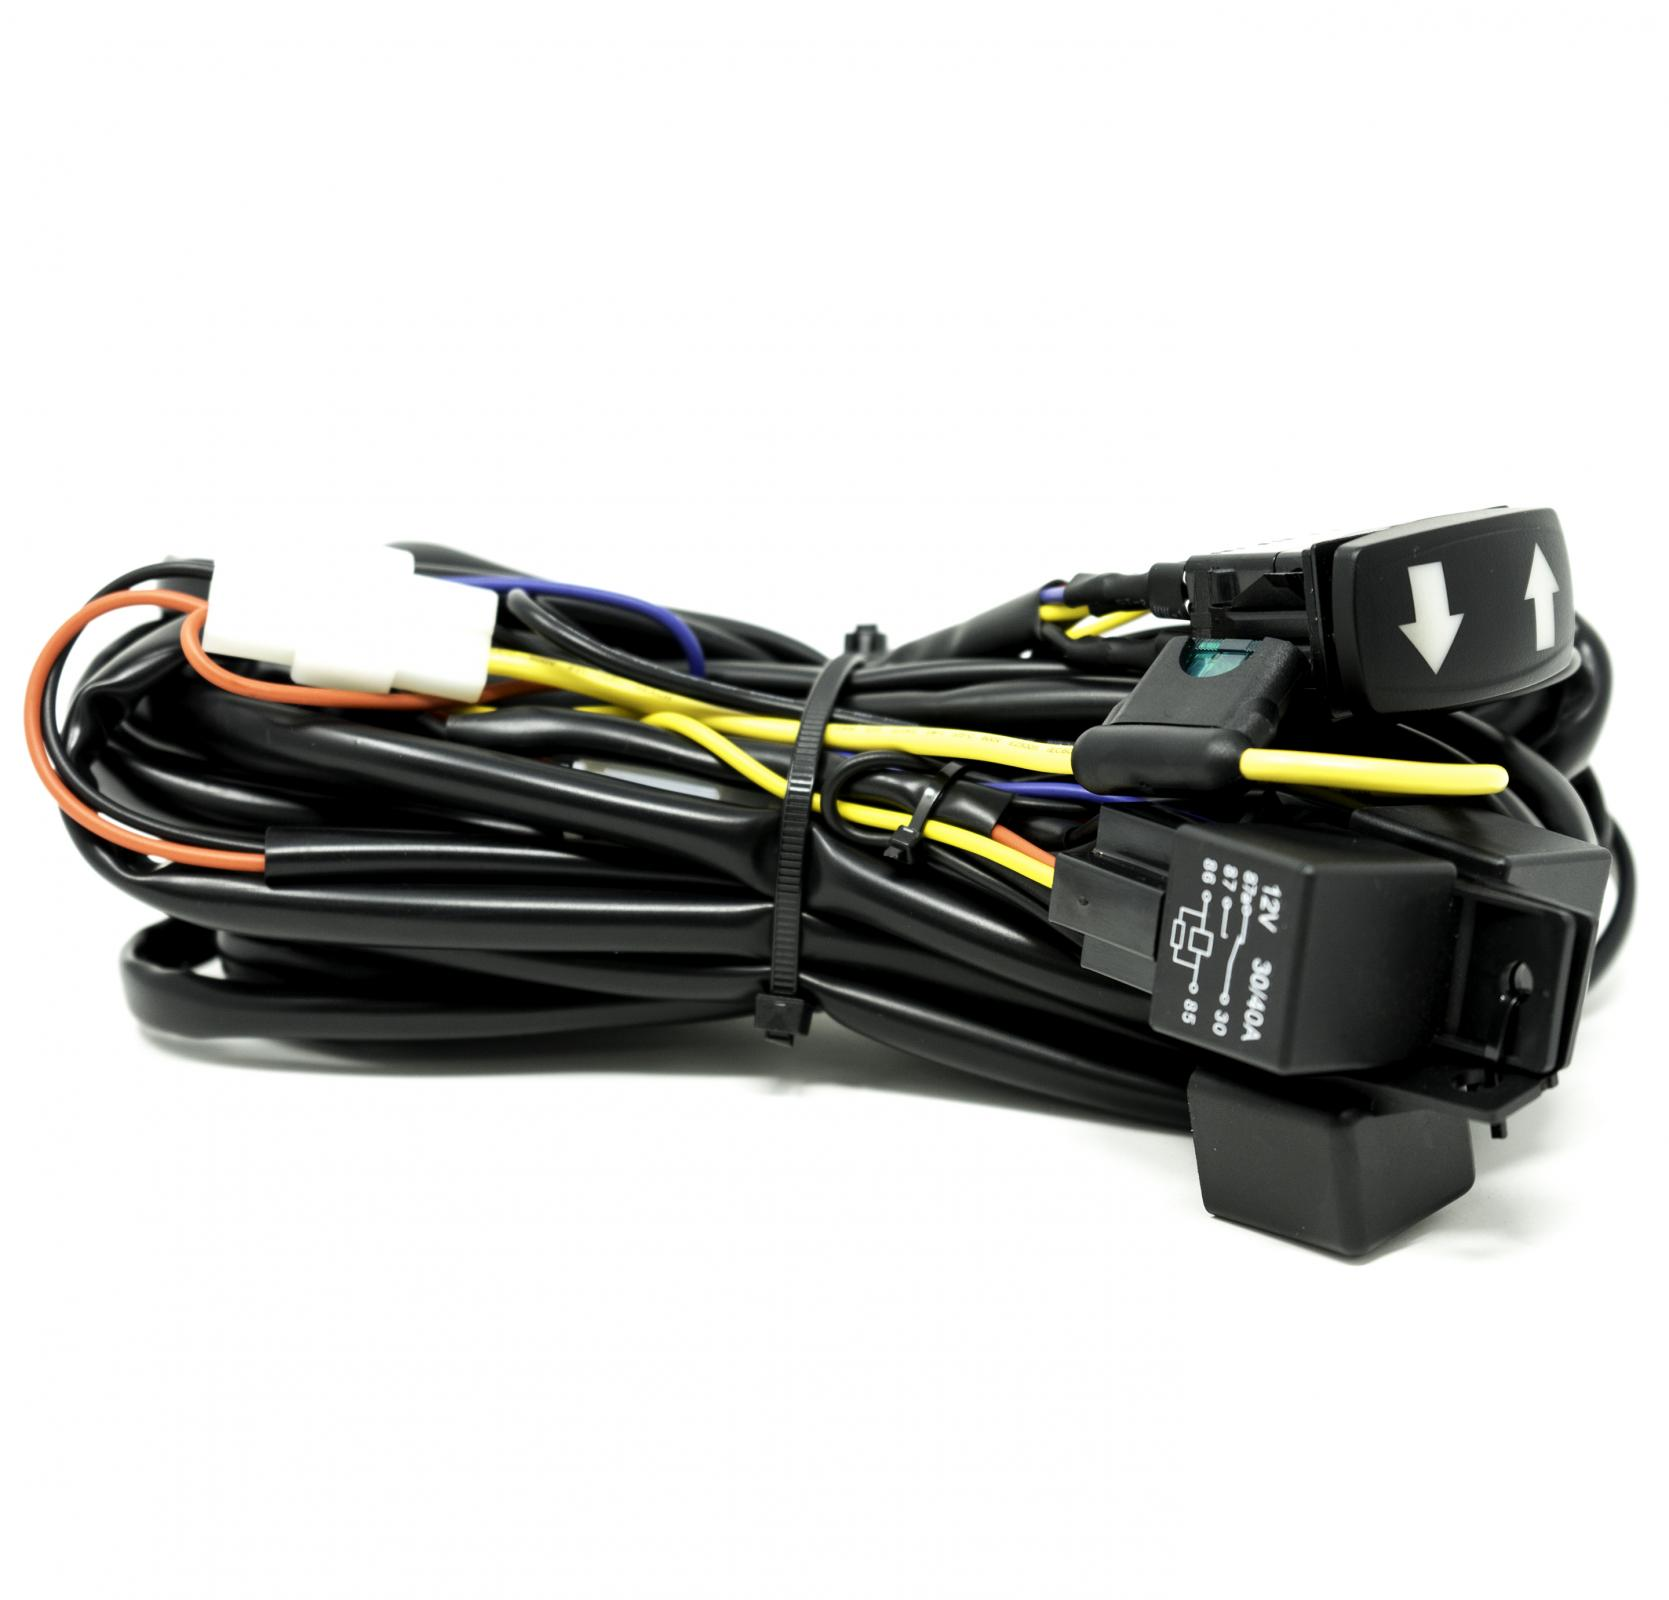 UTV RTL-S Turn Signal Harness Baja Designs